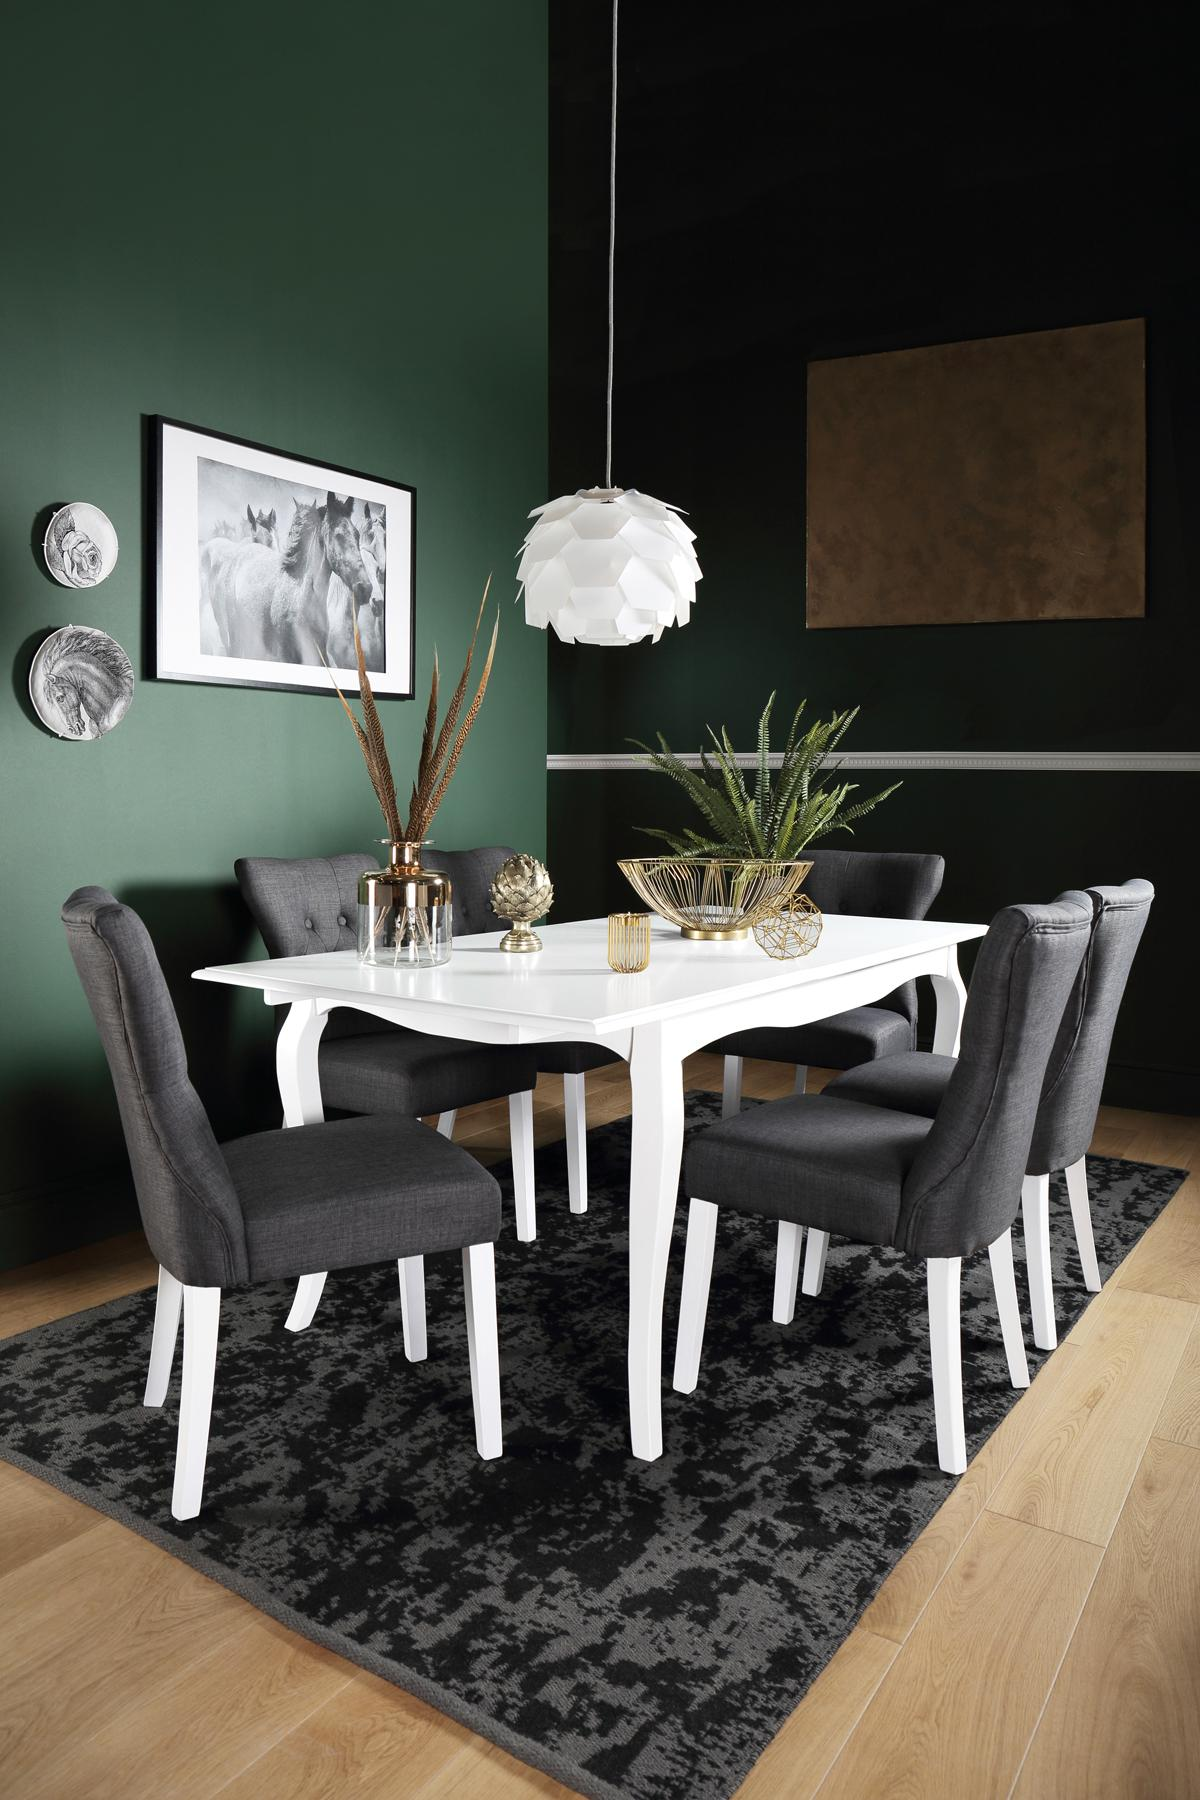 Clarendon White Extending Dining Table - with 6 Bewley Slate Chairs